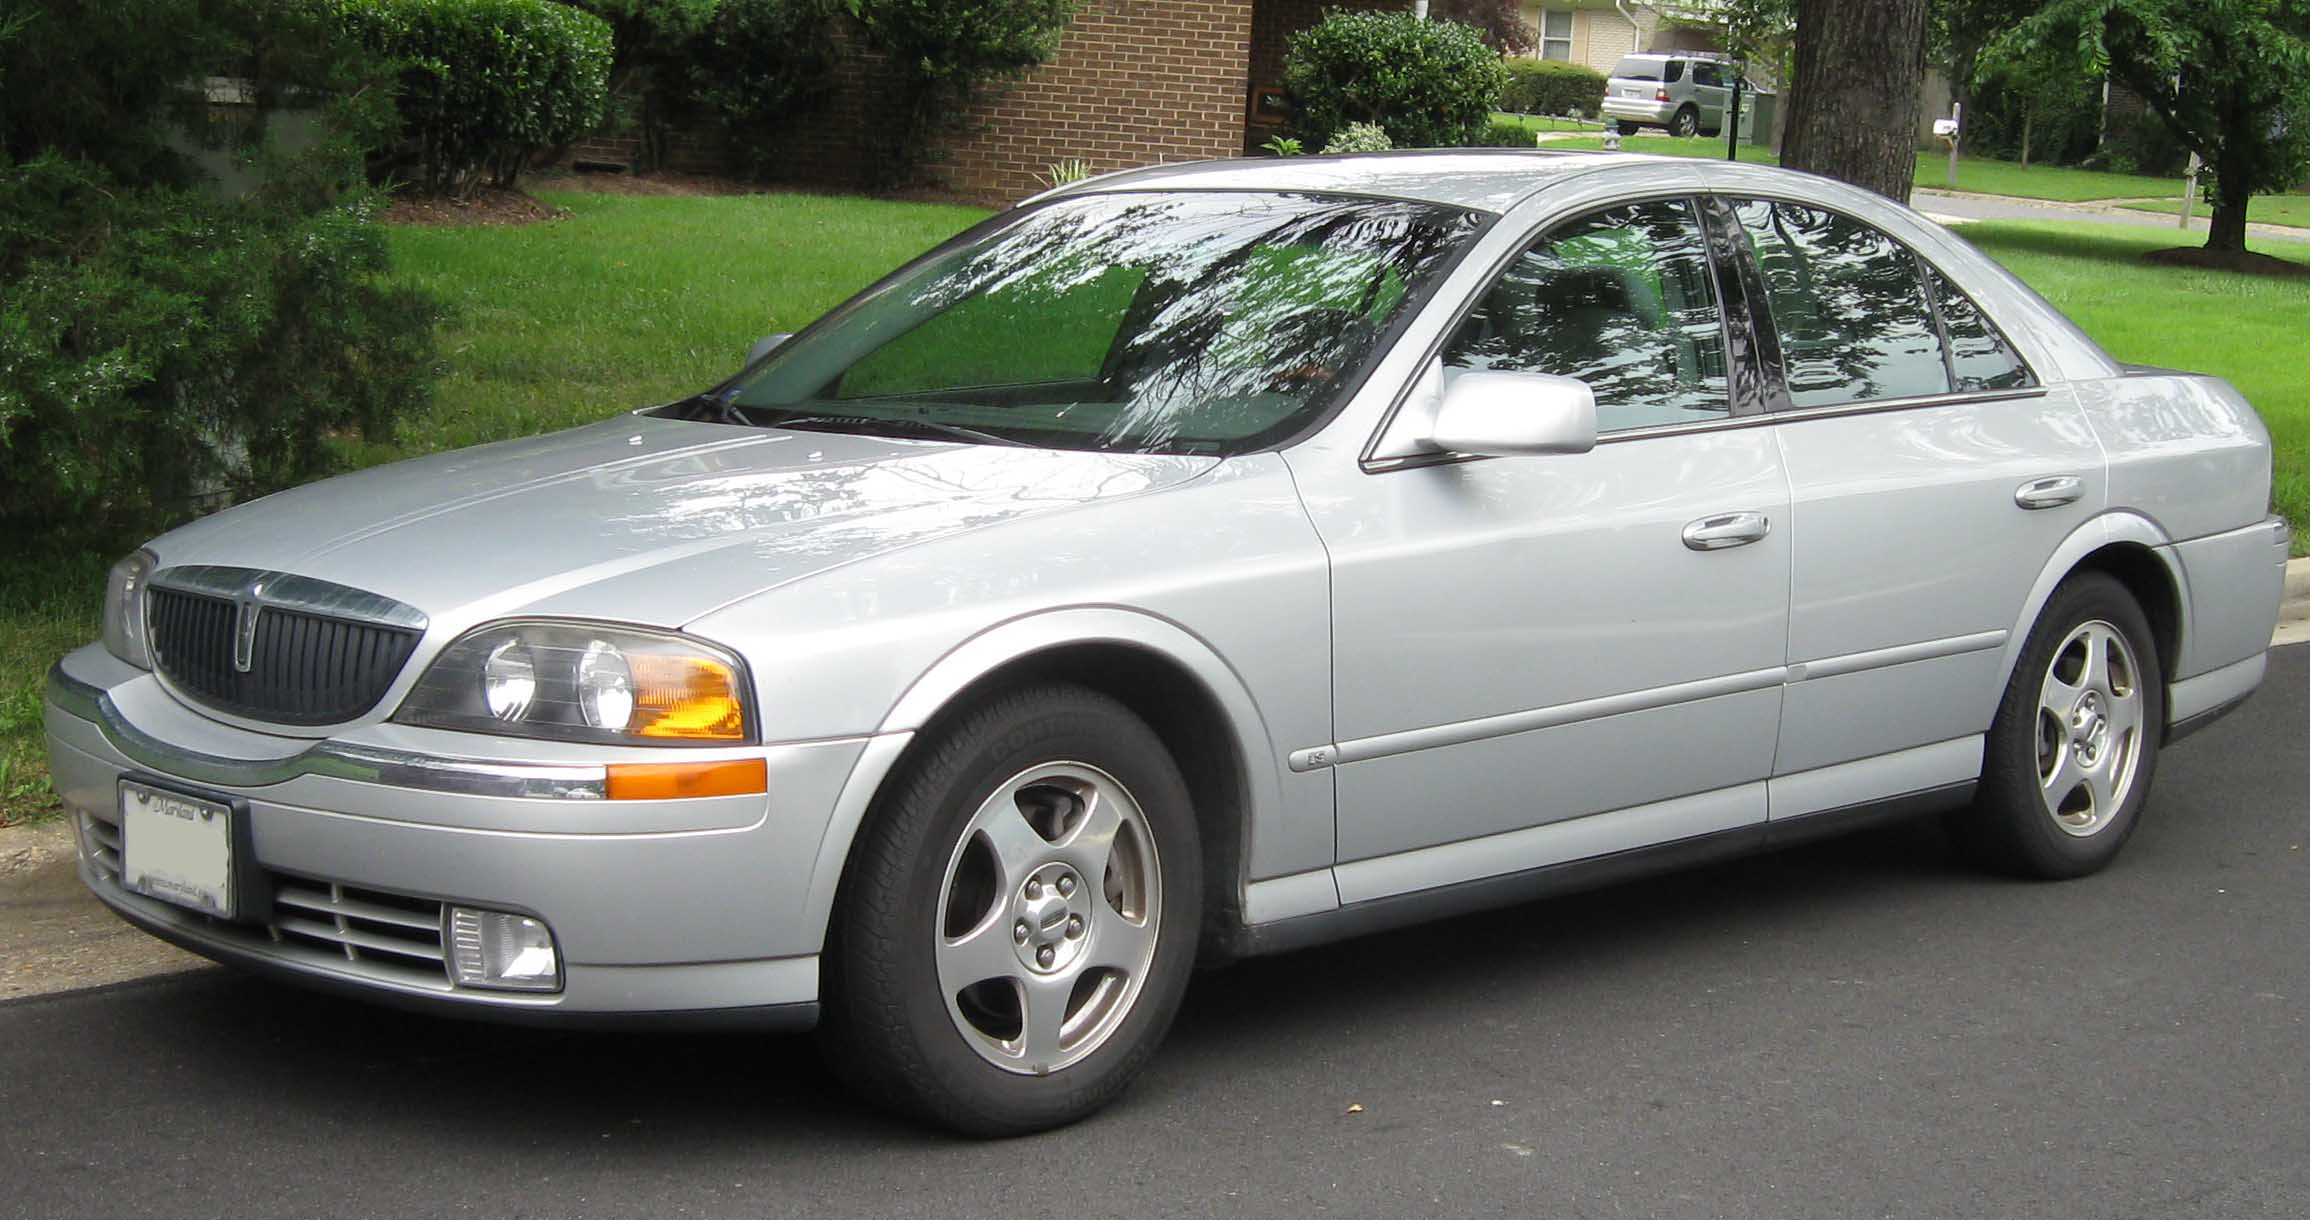 2001 Lincoln Ls #1